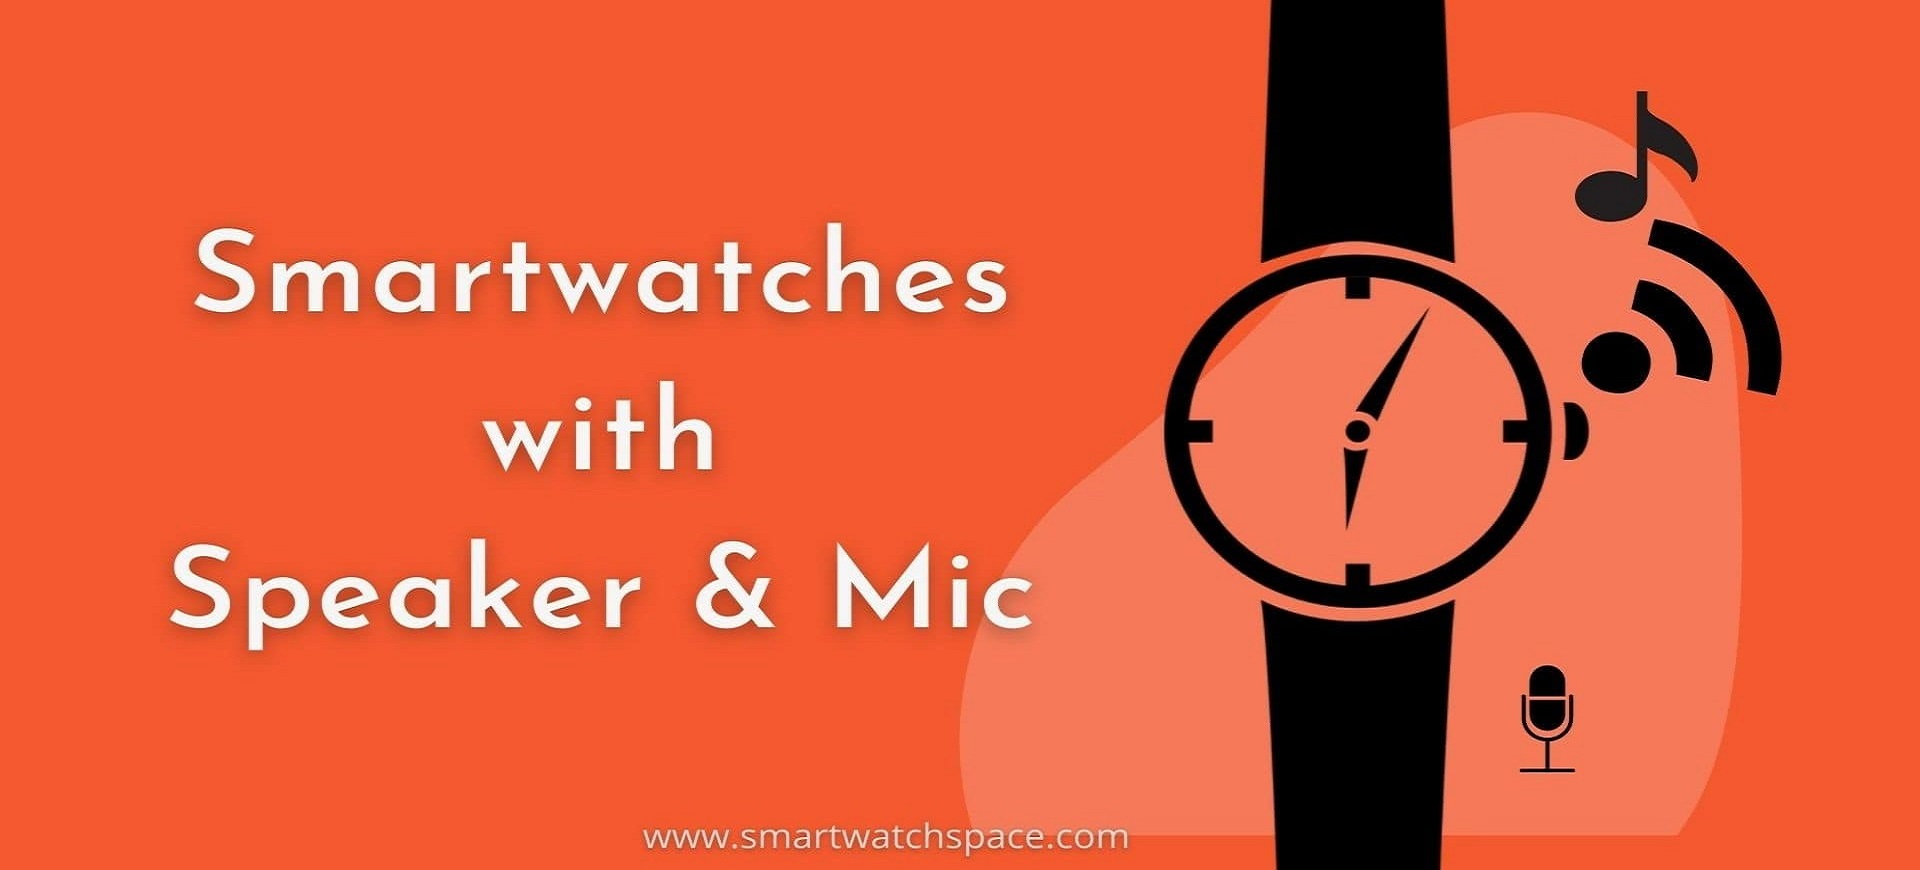 Smartwatches With Speaker & Mic